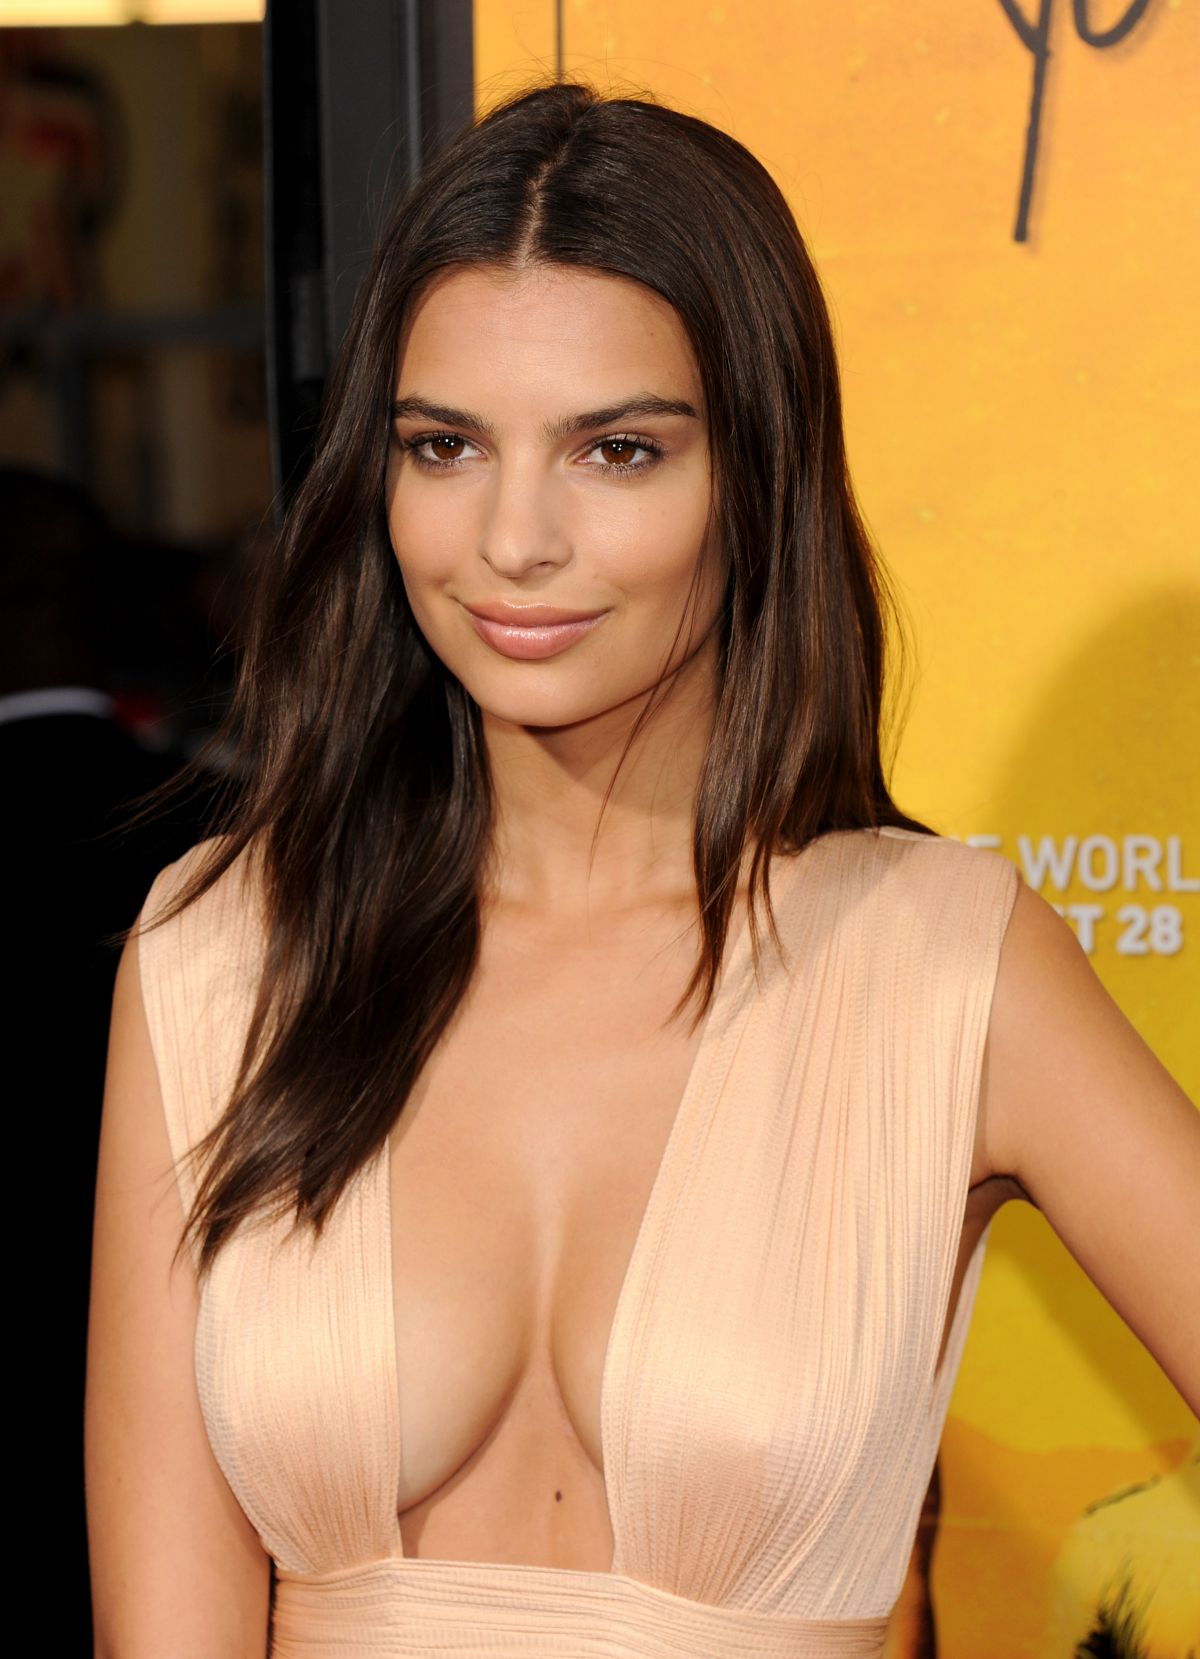 Emily Ratajkowski HQ wallpapers